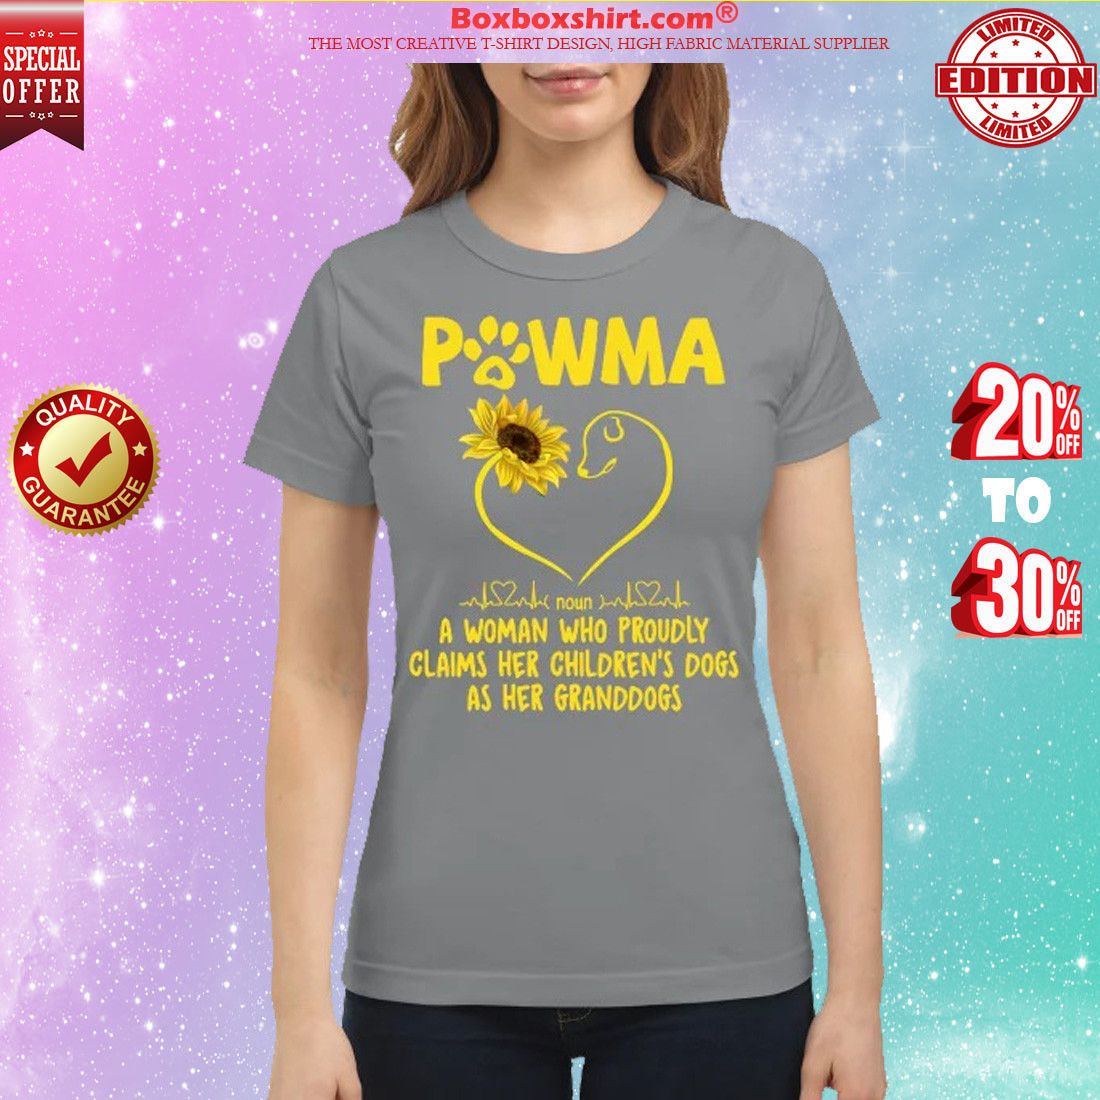 Pawma a woman who proudly claims her children dogs as her grandogs classic shirt